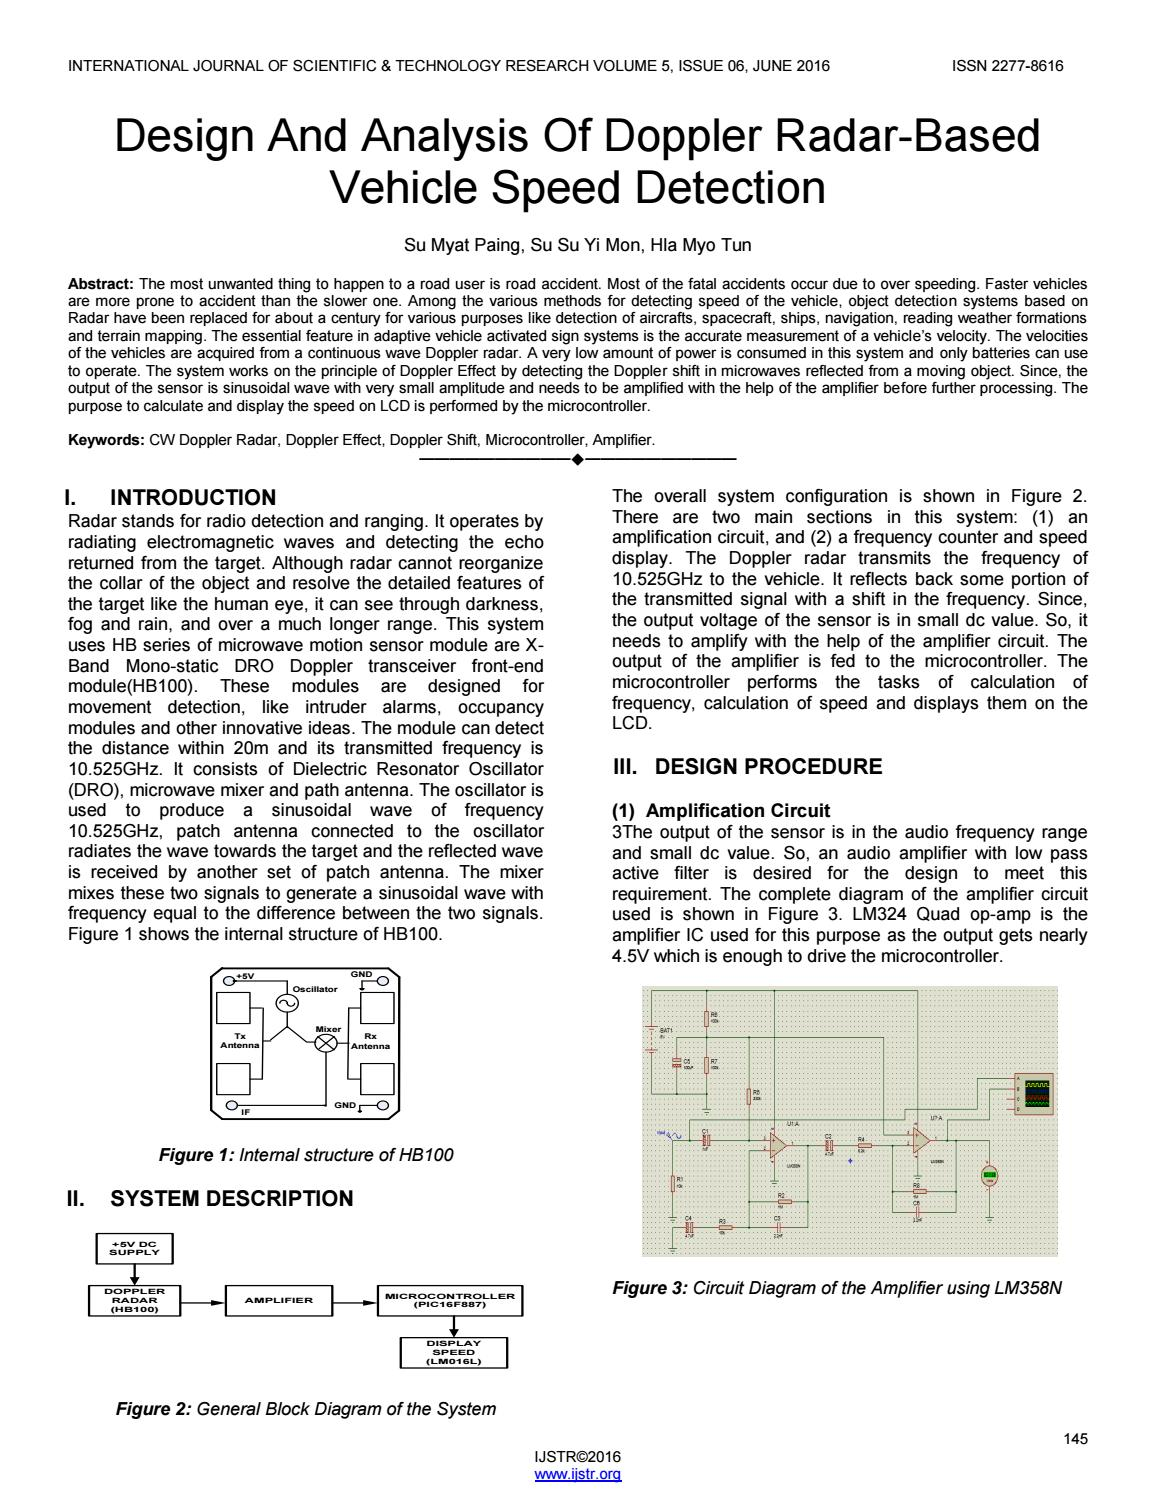 Design And Analysis Of Doppler Radar Based Vehicle Speed Detection Lm324 Comparator Circuit By Ijstr Research Publications Issuu